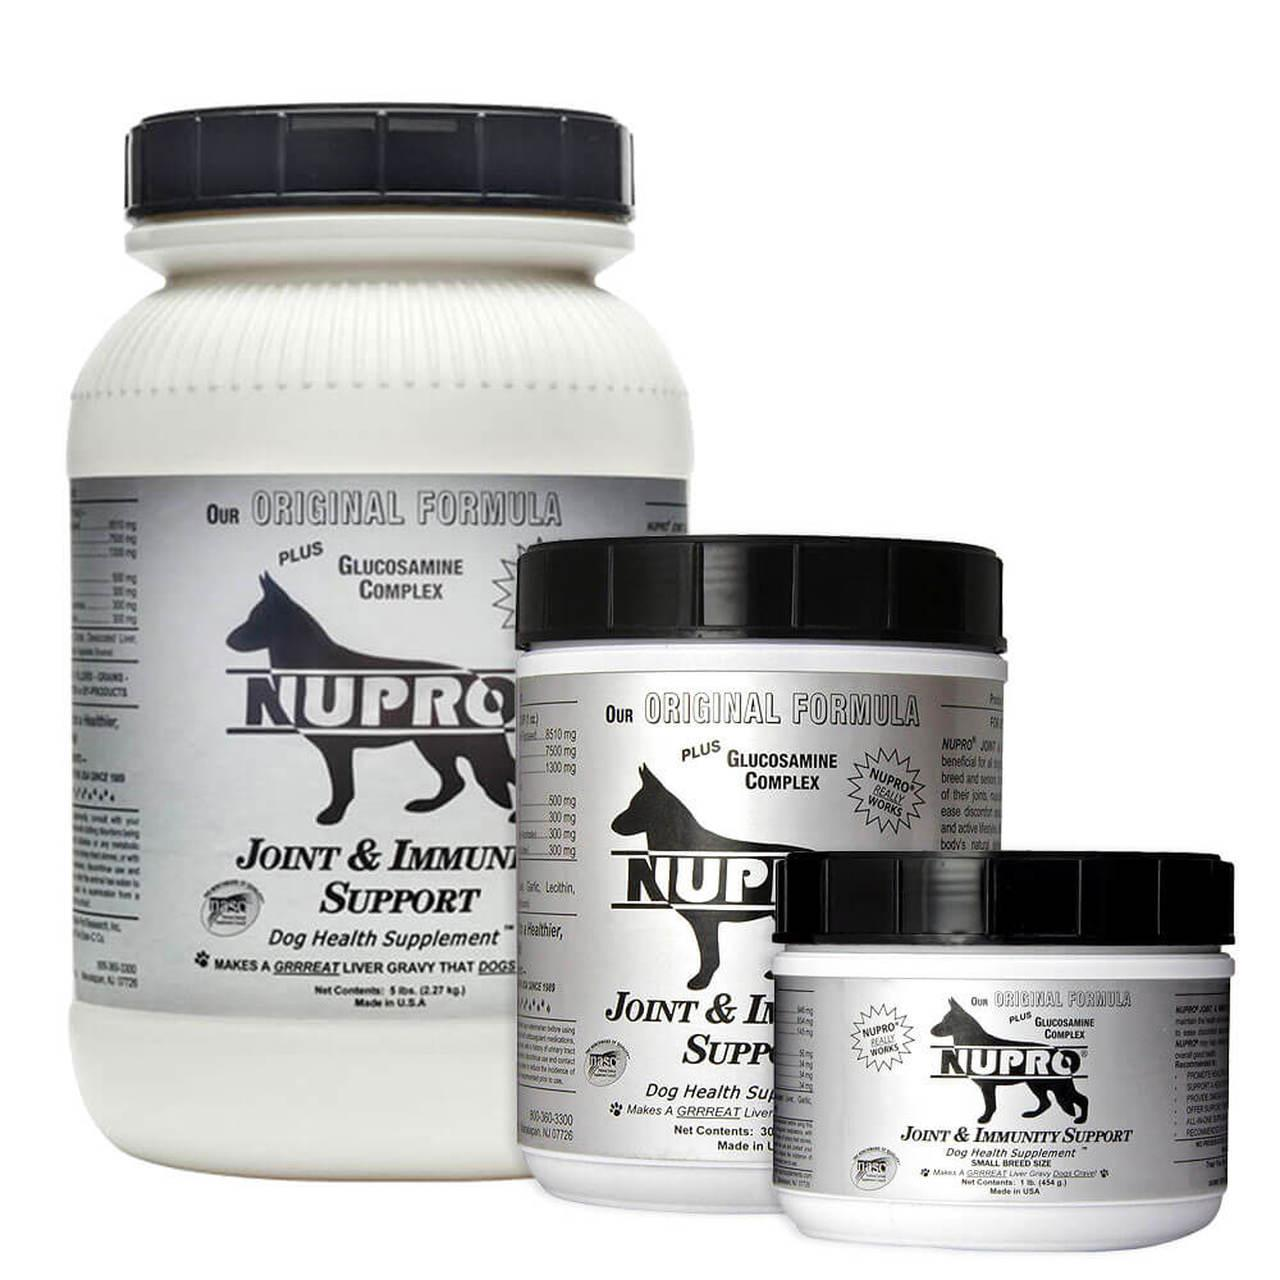 Nupro Joint & Immunity Support Dog Supplement